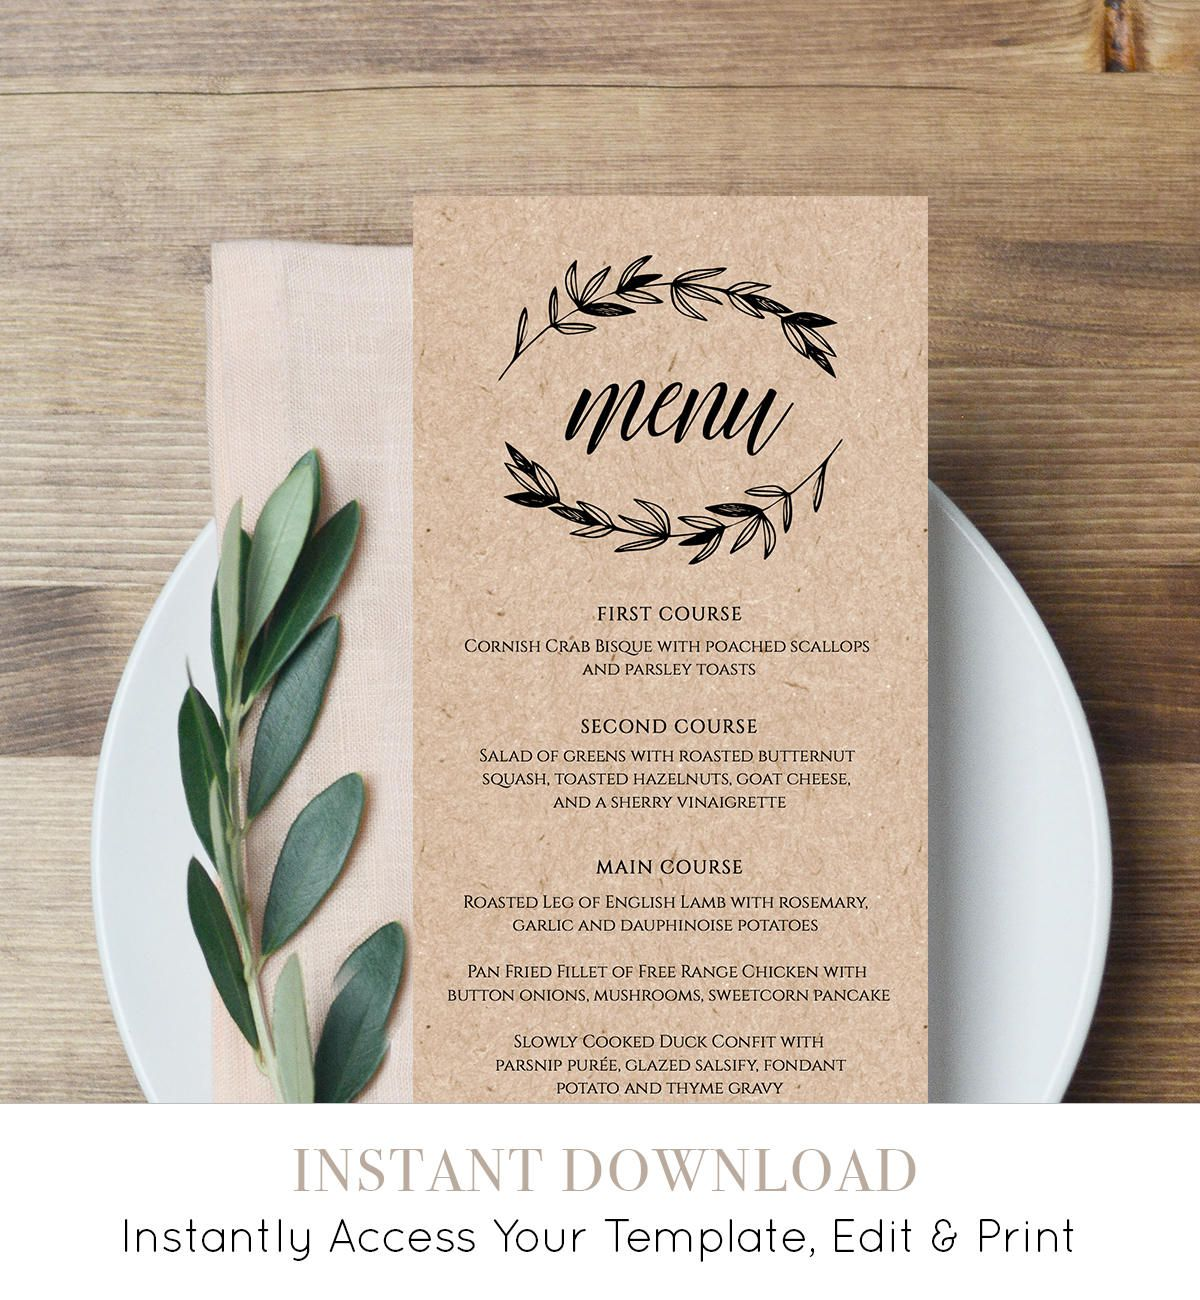 007 Unforgettable Free Wedding Menu Template To Print Inspiration  Printable CardFull